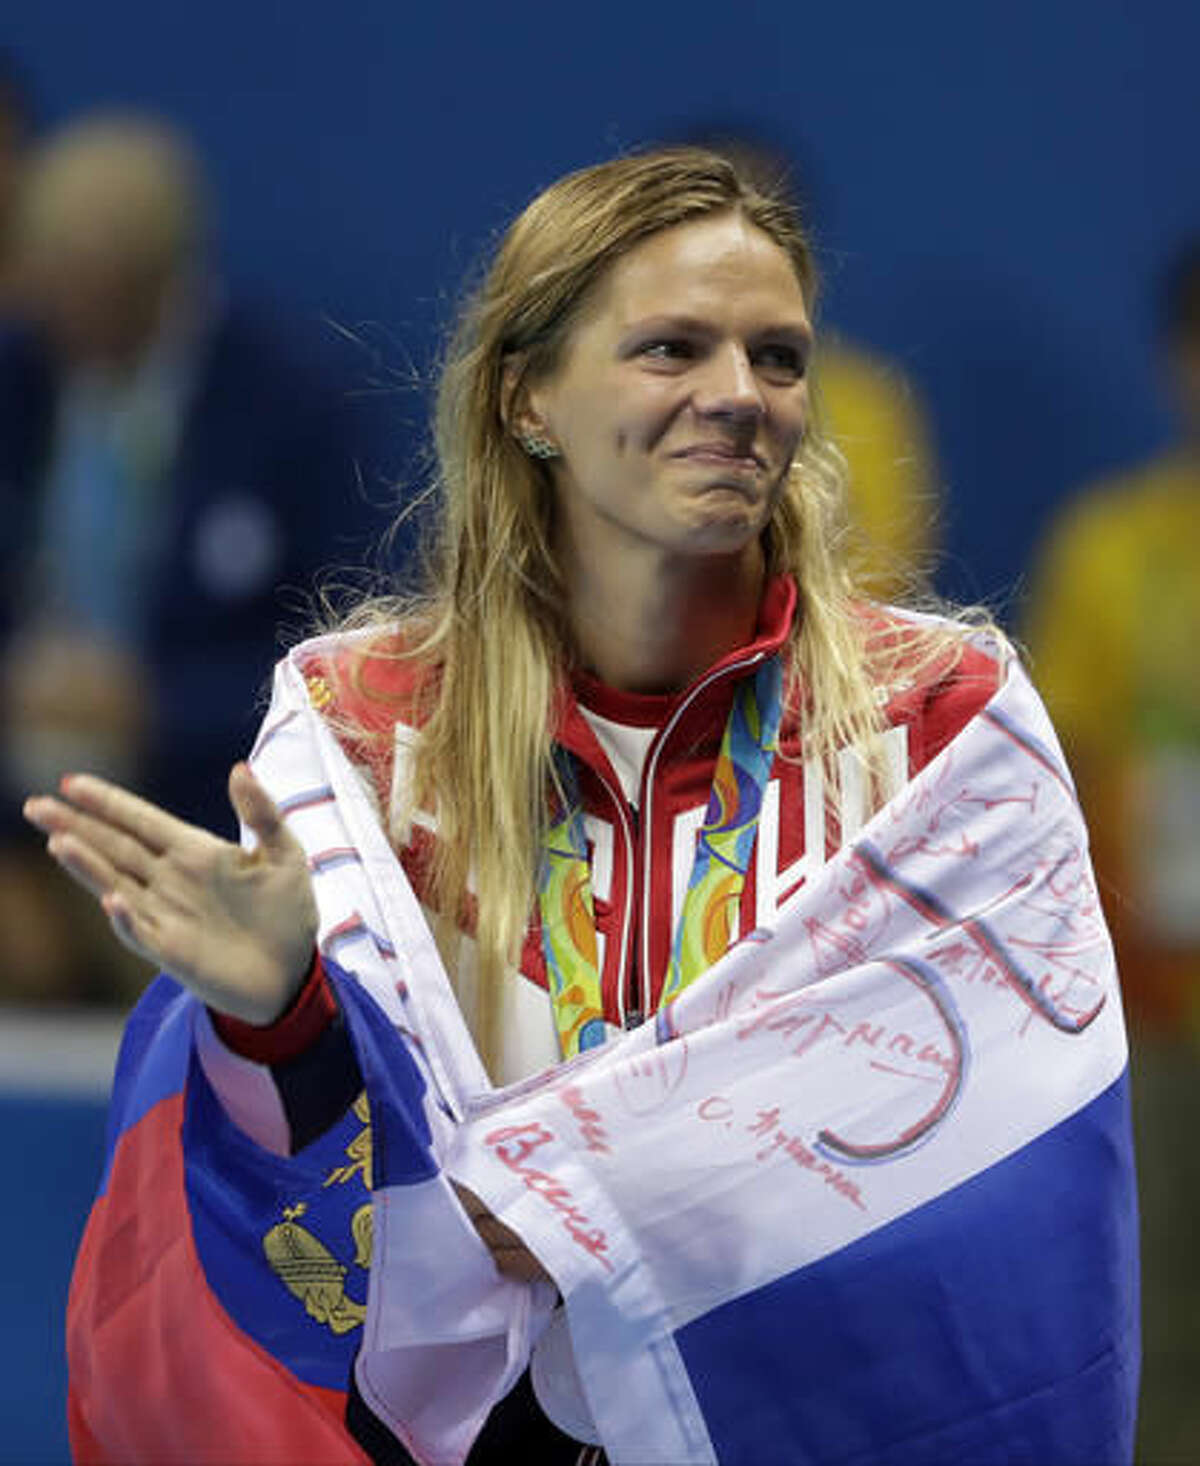 Russia's silver medal winner Yulia Efimova waves during the medal ceremony for the women's 100-meter breaststroke during the swimming competitions at the 2016 Summer Olympics, Tuesday, Aug. 9, 2016, in Rio de Janeiro, Brazil. (AP Photo/Matt Slocum)